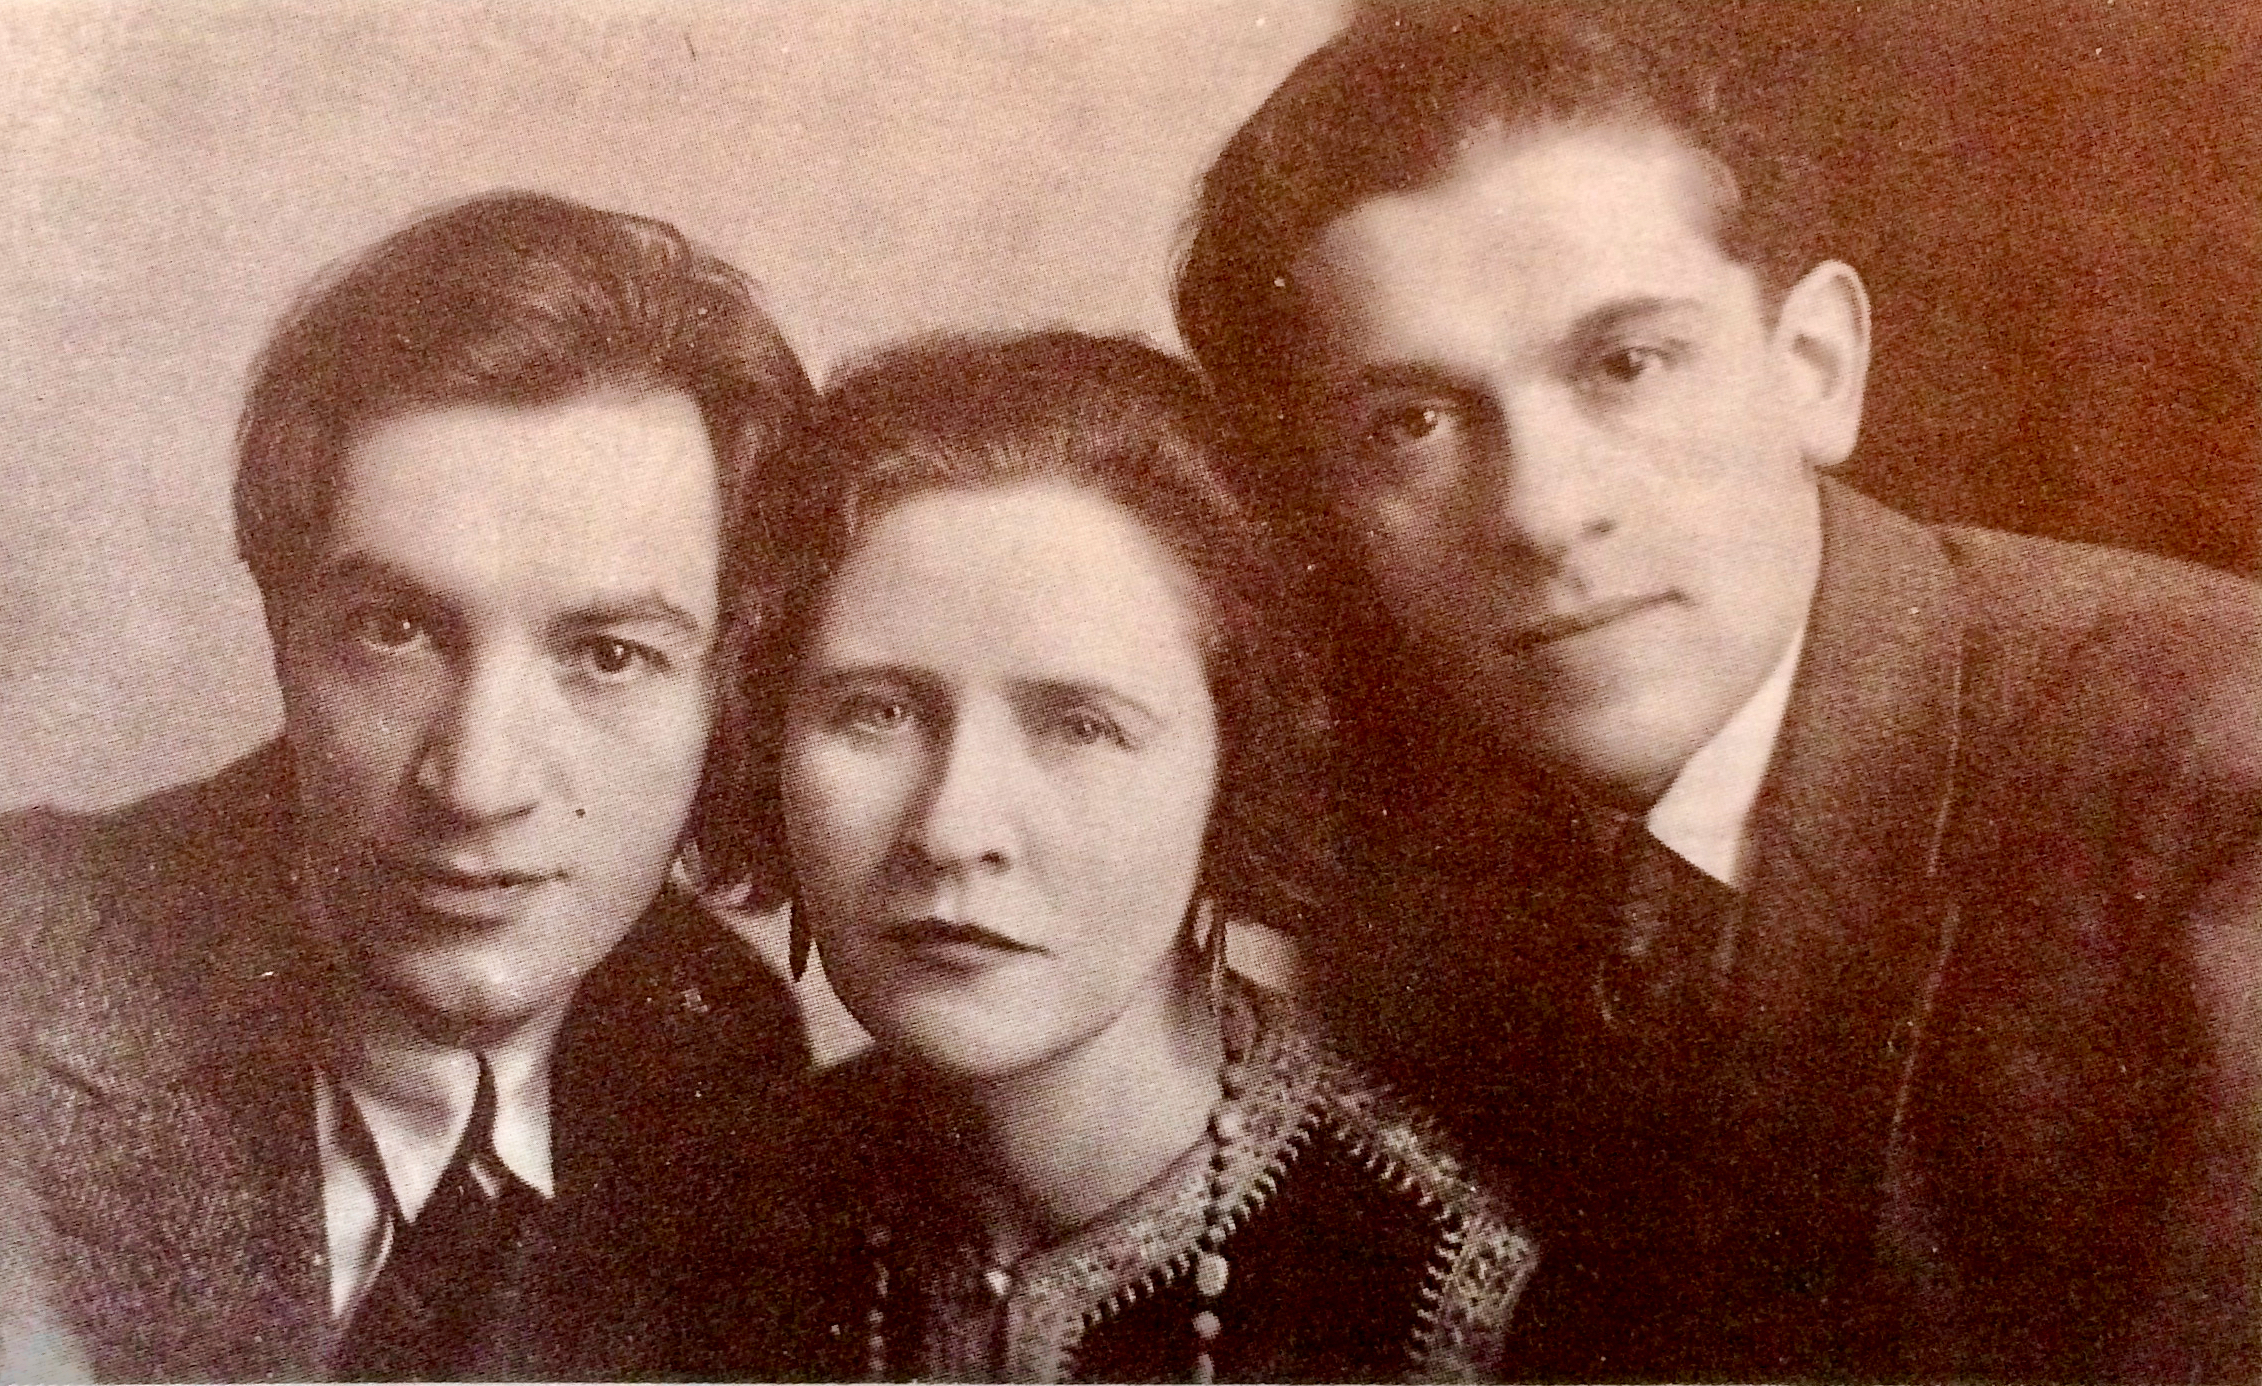 """<p>Moyshe Broderzon, Hannah Rovinah, and Hertz Grosbard. Rovinah brought this photo to their reunion at Habimah in <span class=""""numbers"""">1955</span>. (© M.&nbsp;Tsanin).</p>"""